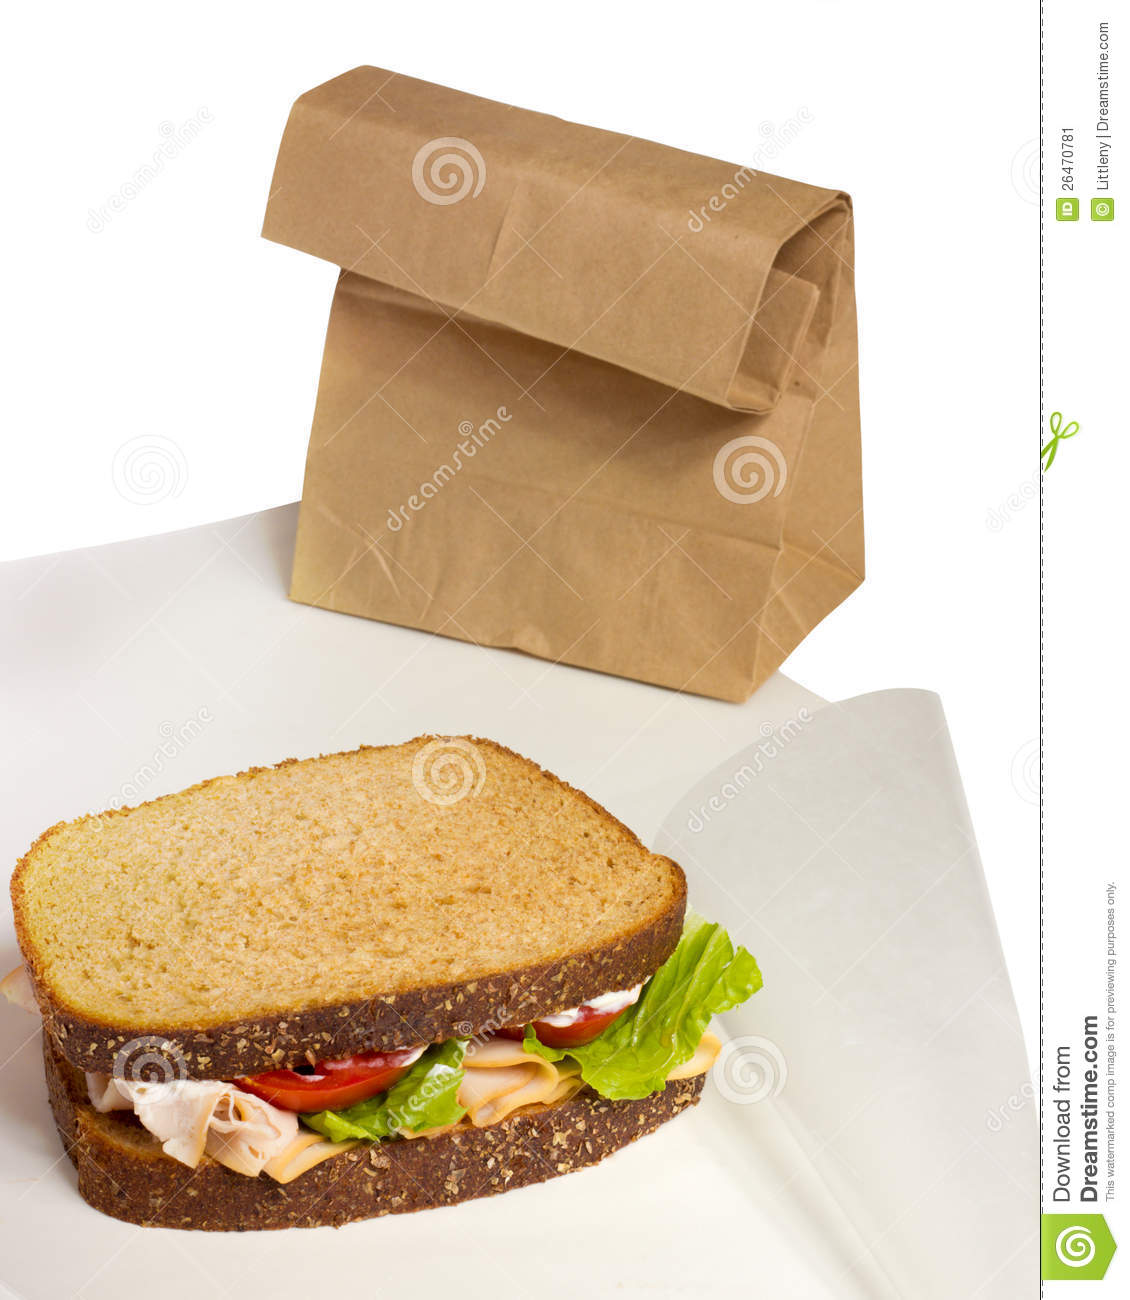 Lunch Sandwich Stock Image   Image  26470781